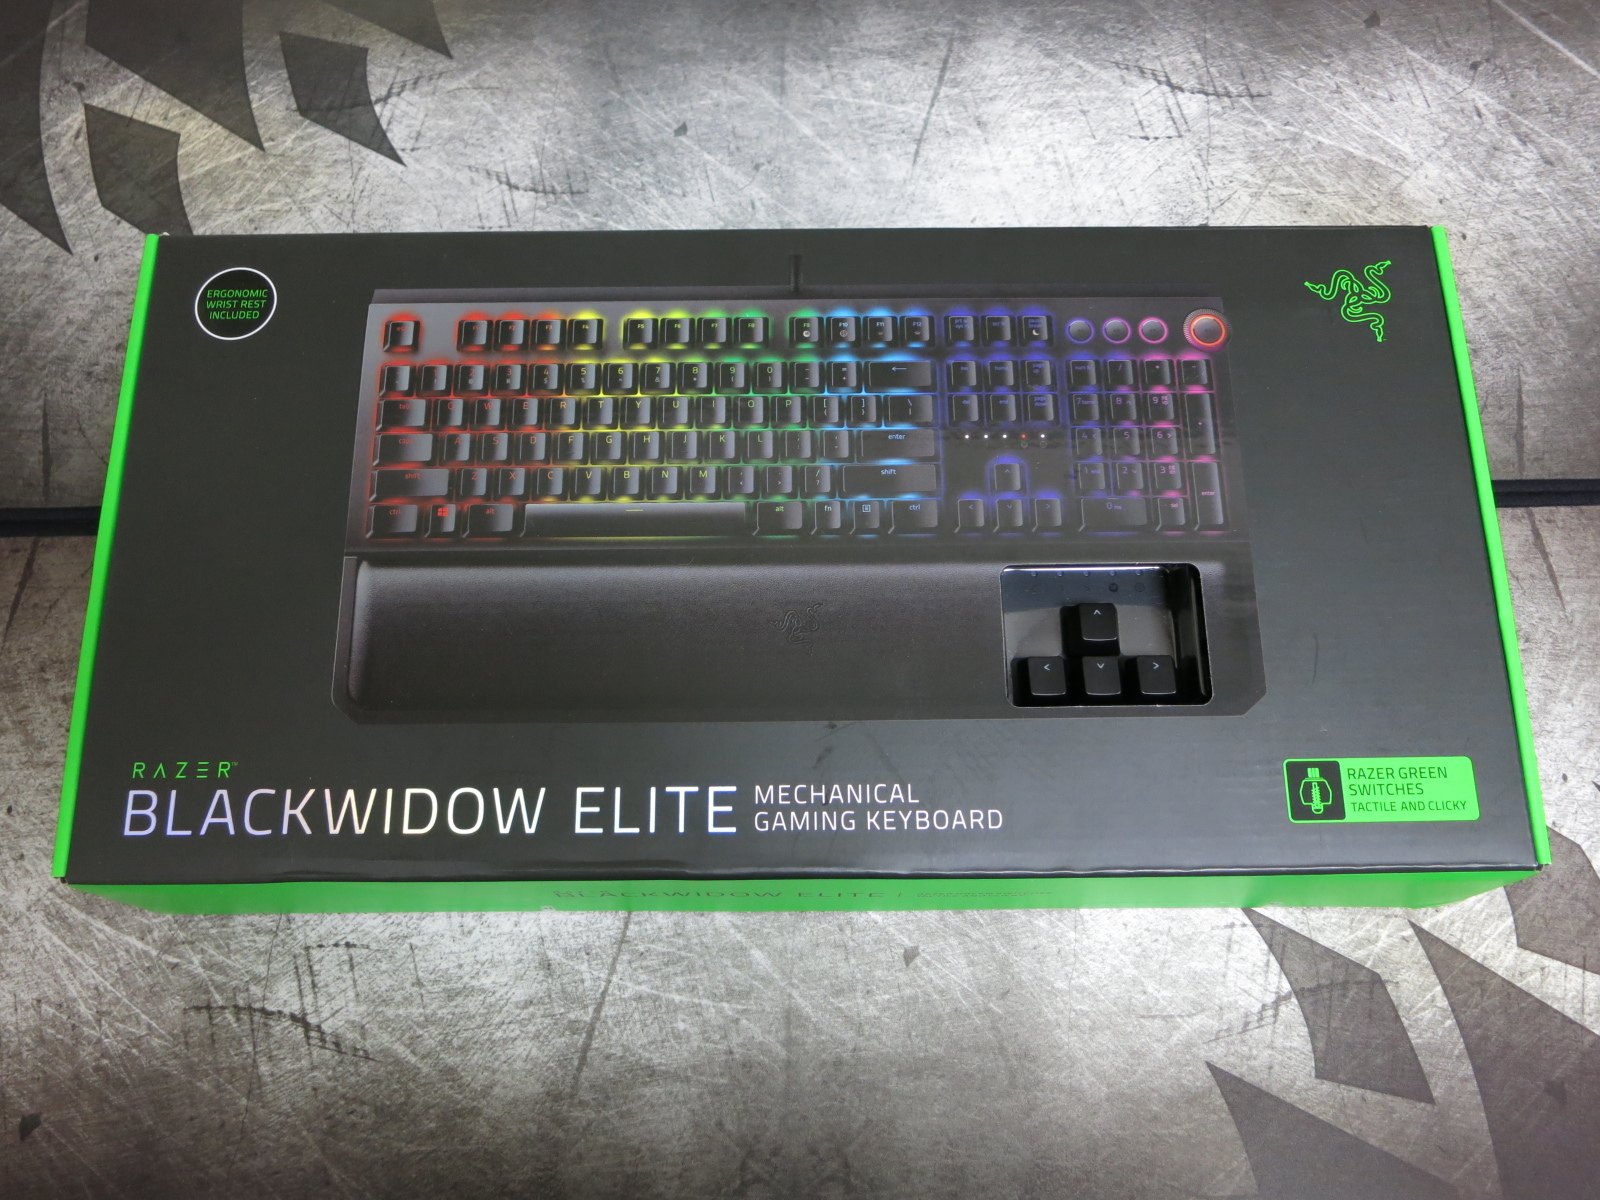 Razer_BlackWidow_Elite_Review_02.jpg